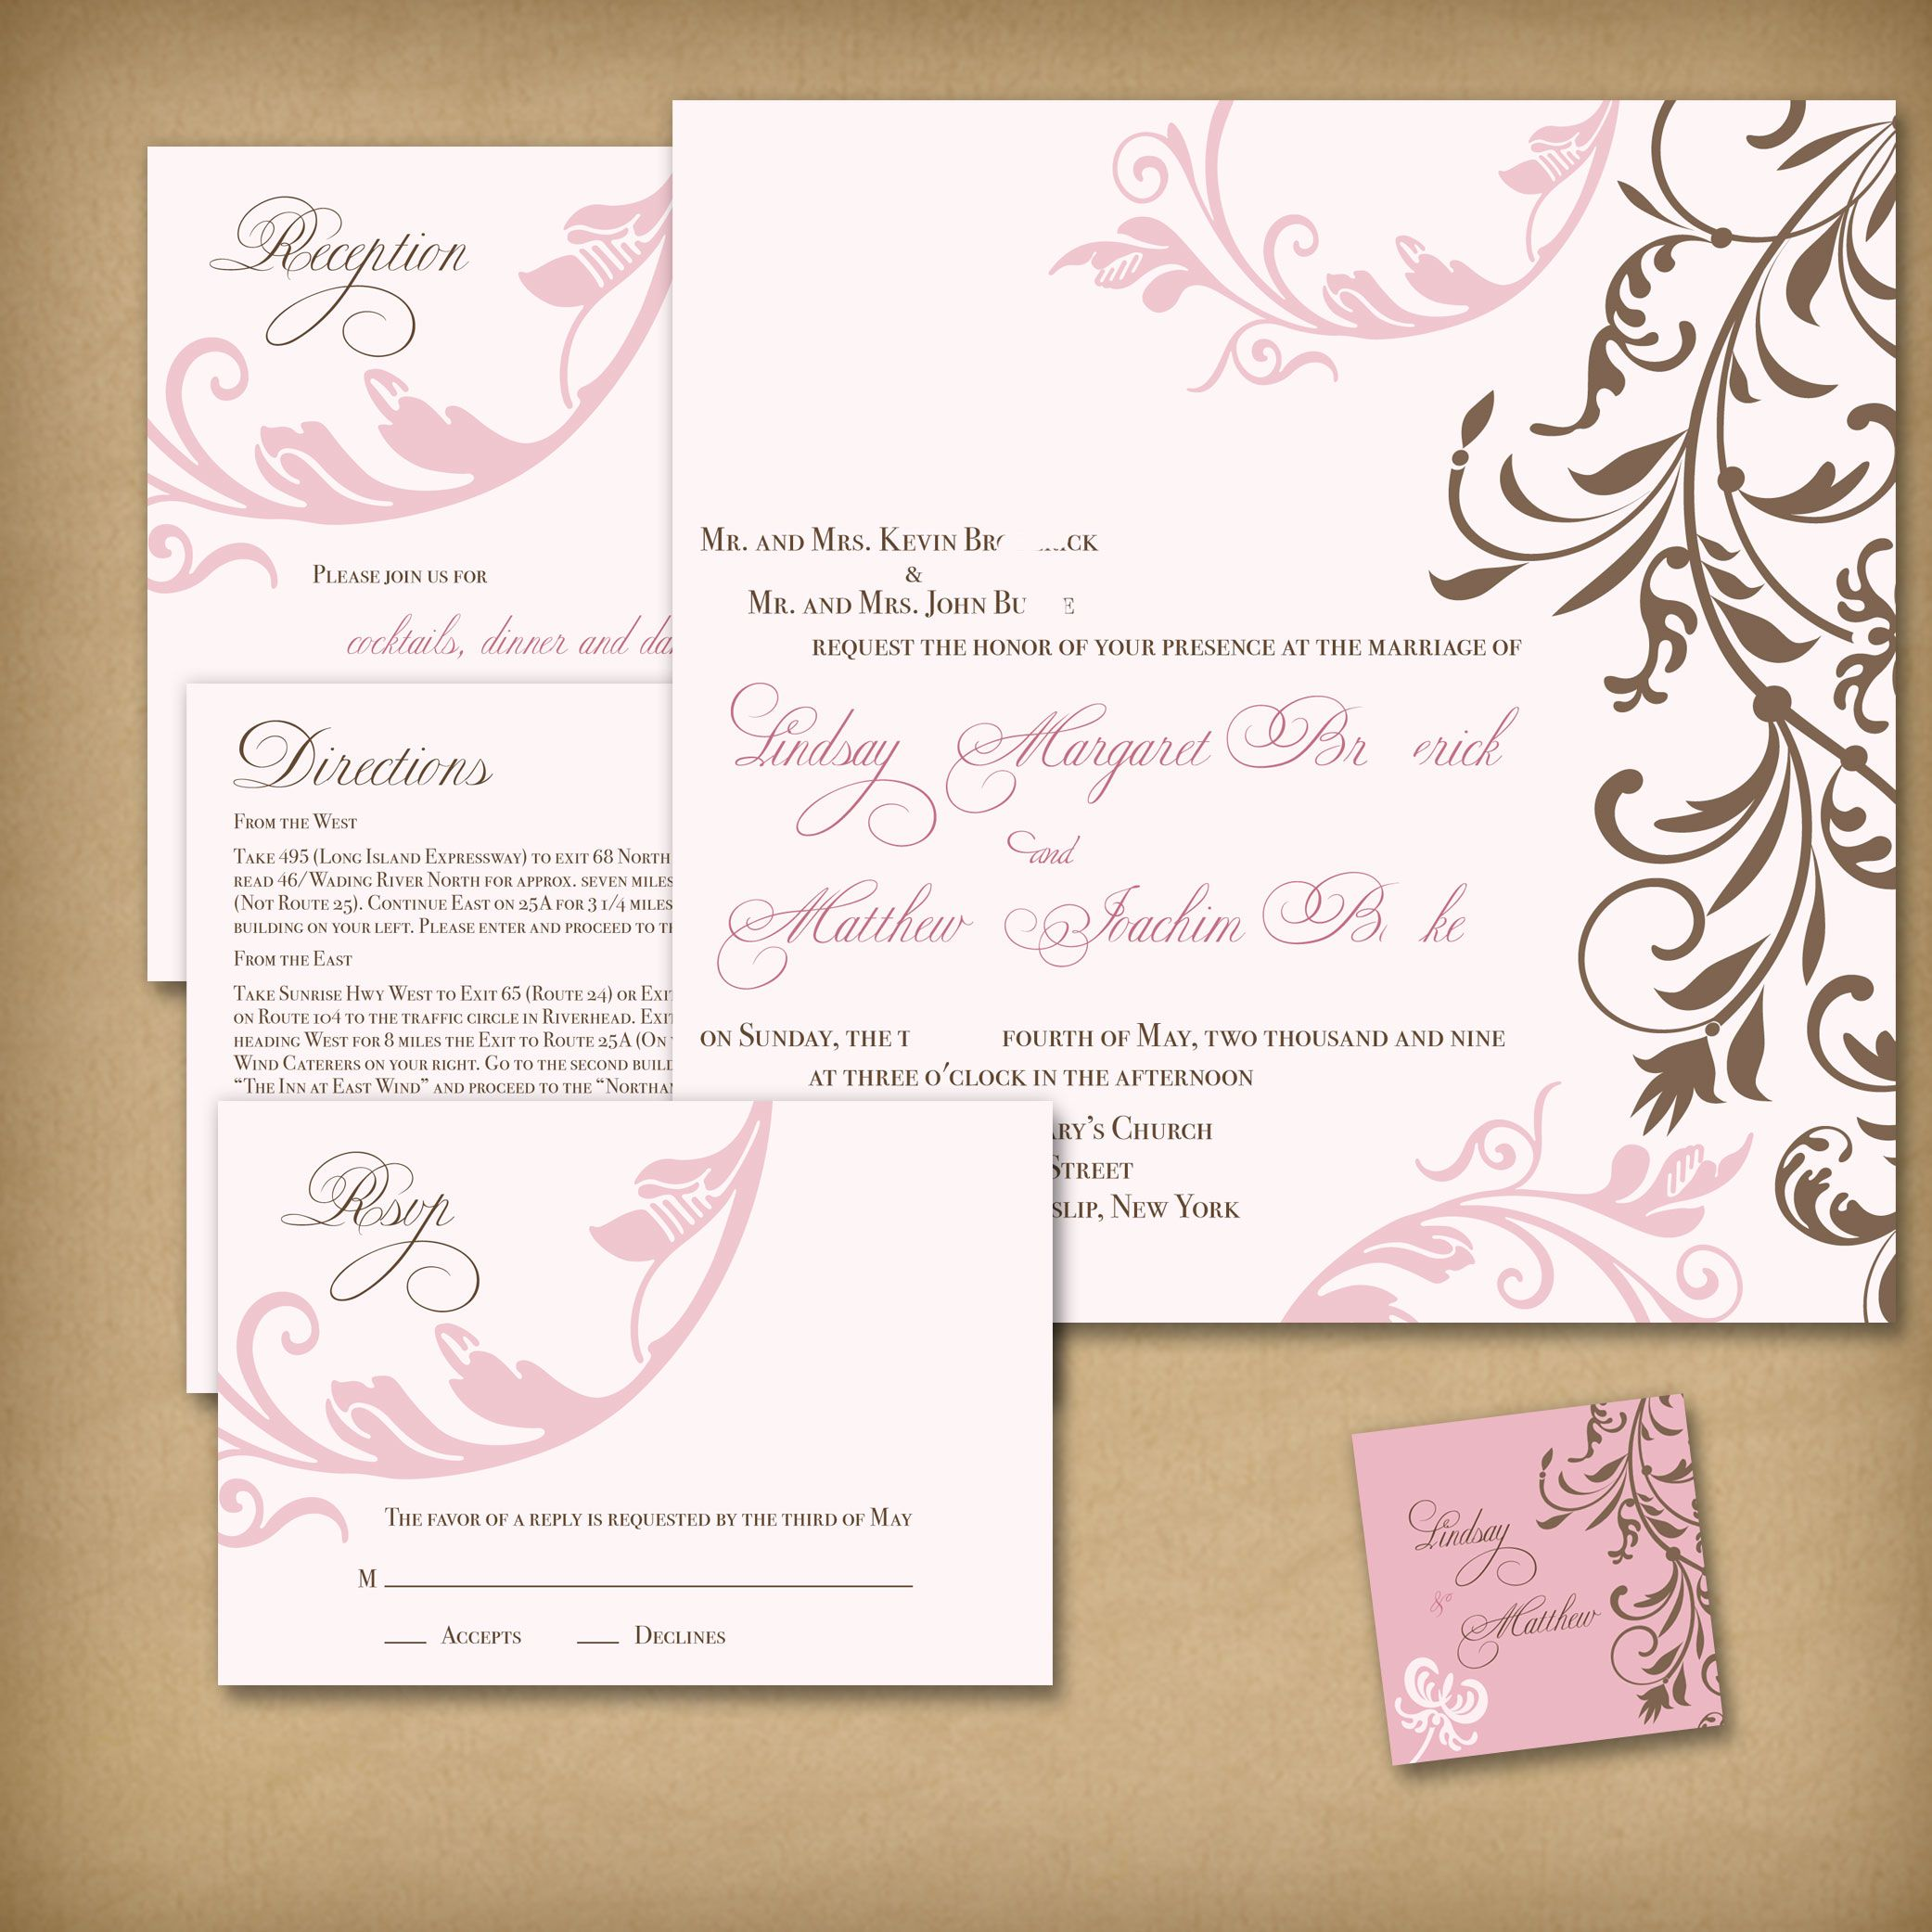 Wedding Invitation Card Template What Do You Think Love The Wording On These Create Wedding Invitations Wedding Invitations Online Wedding Invitation Design